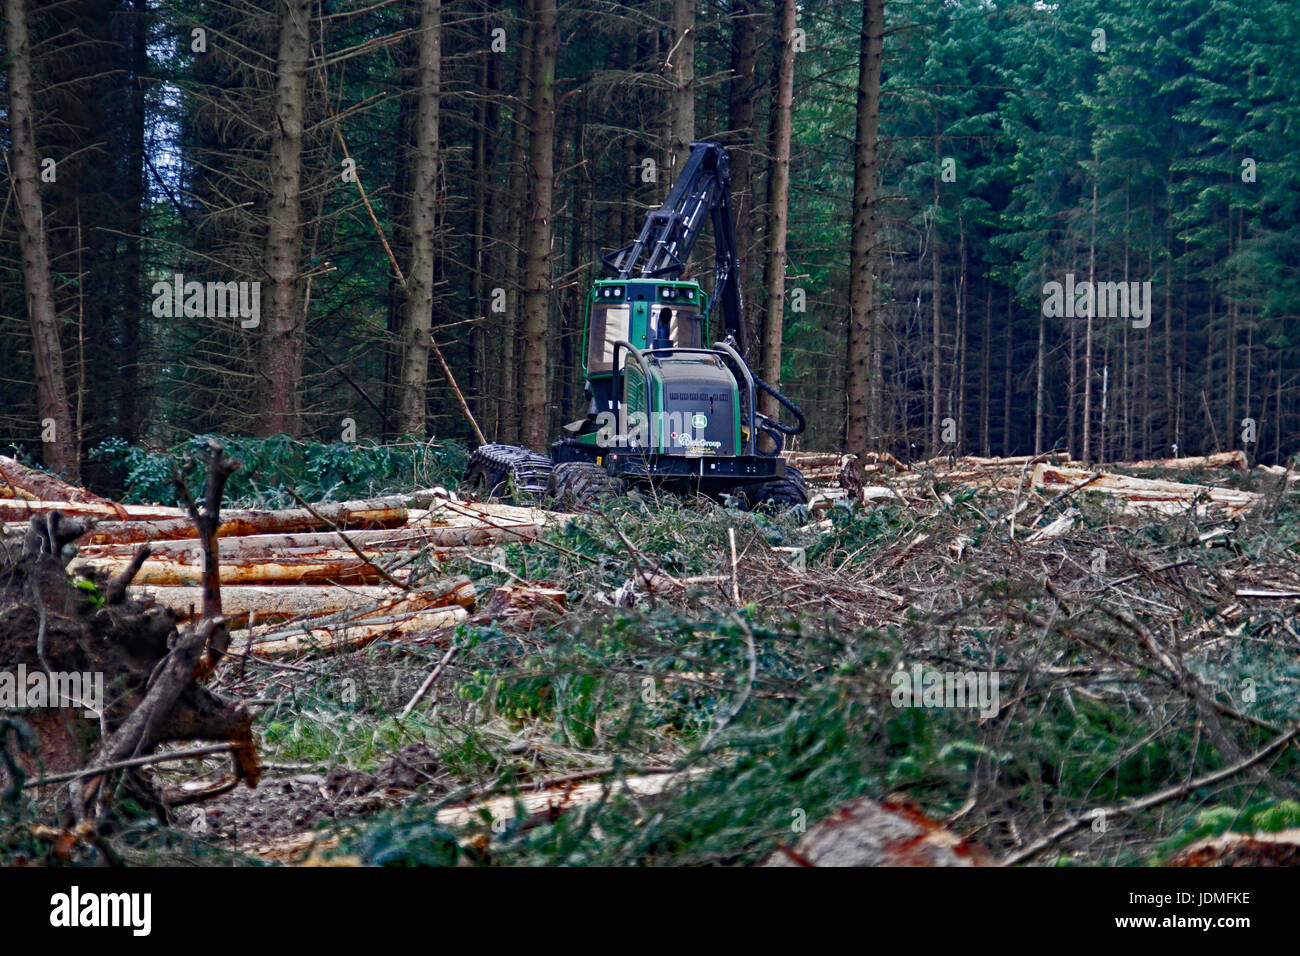 forestry - Stock Image